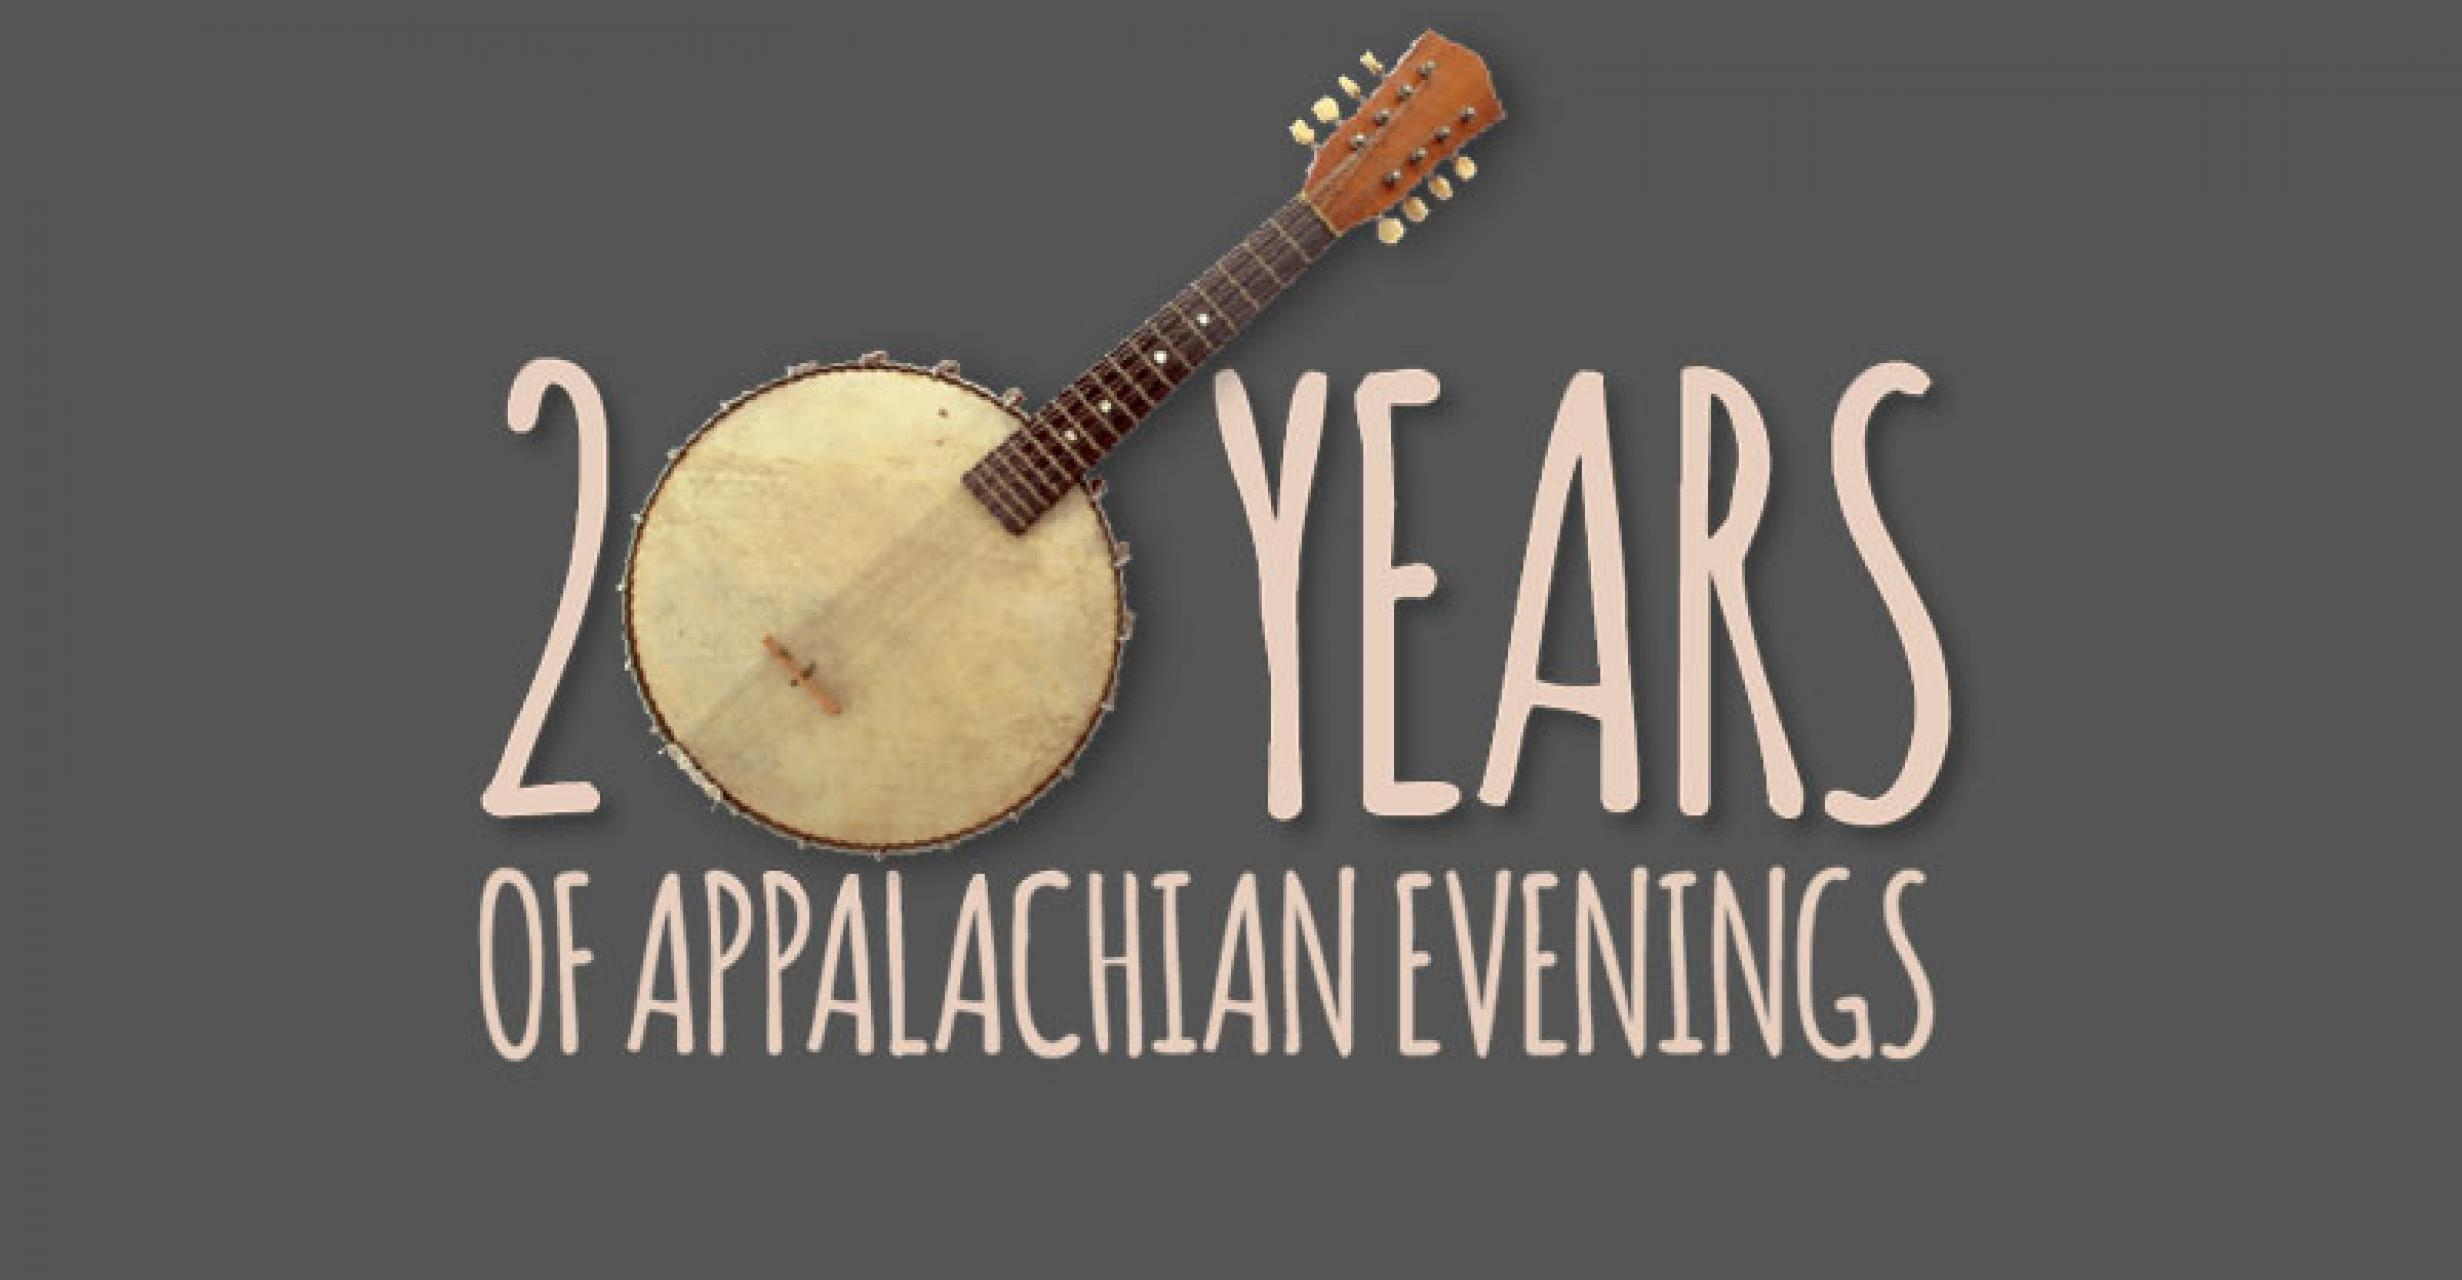 Stecoah Appalachian Evenings 20 Year Anniversary Logo